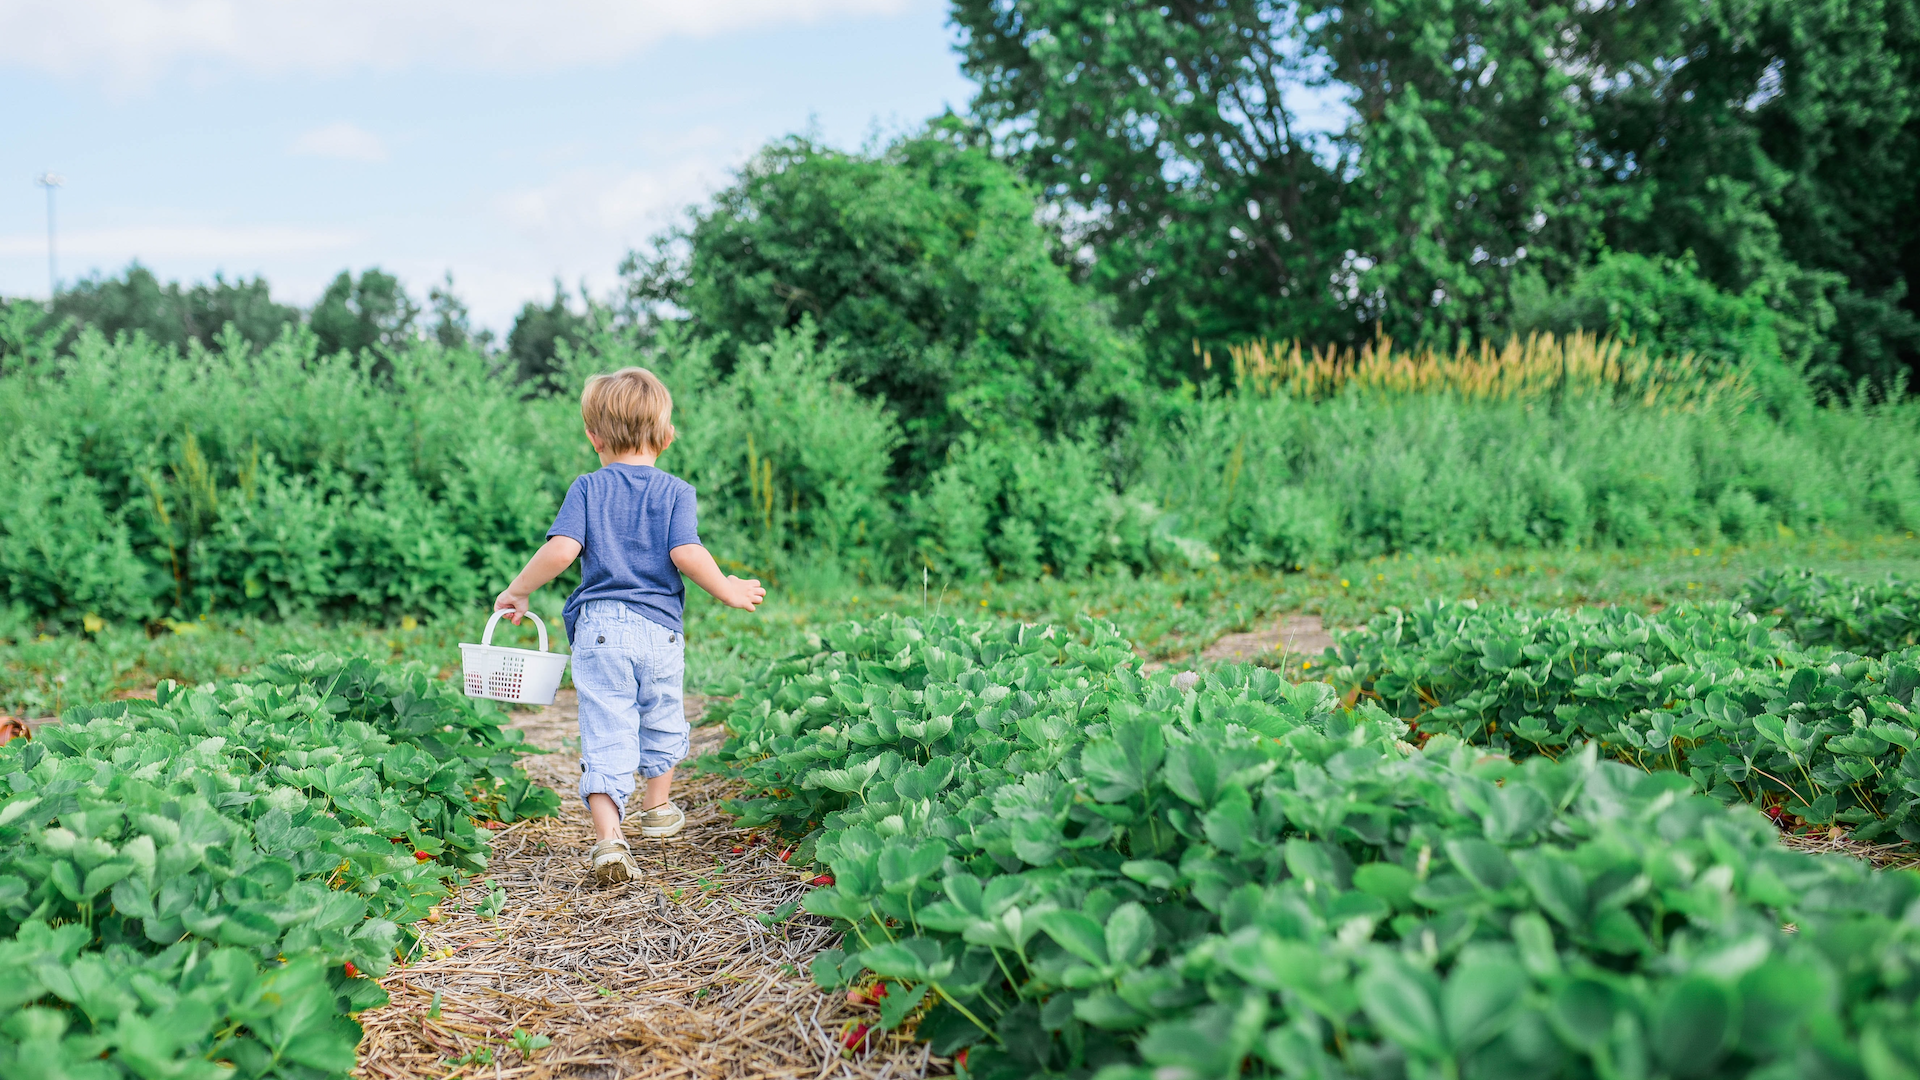 Three Activities for Preschool Families: The Farmer and the Seed Hero Image